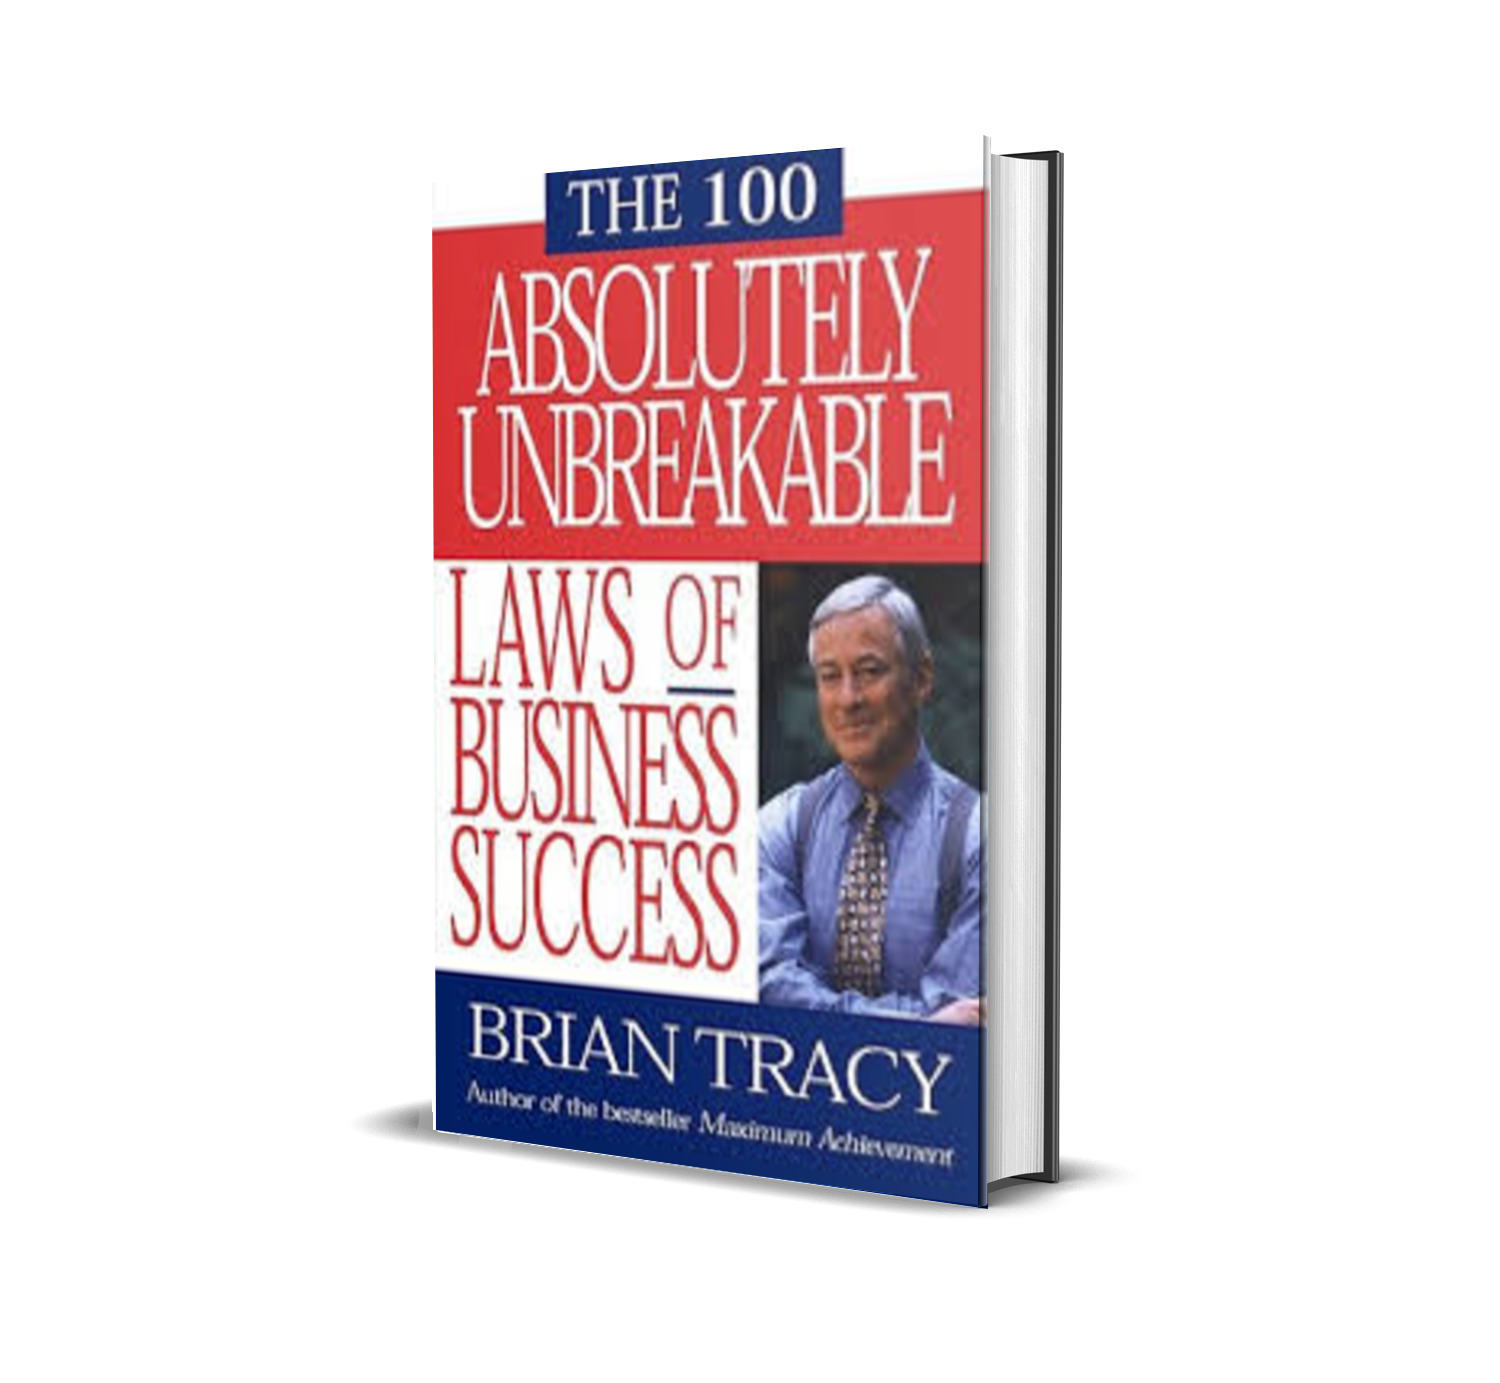 THE 100 ABSOLUTELY UNBREAKABLE LAWS OF BUSINESS SUCCESS- BRIAN TRACY